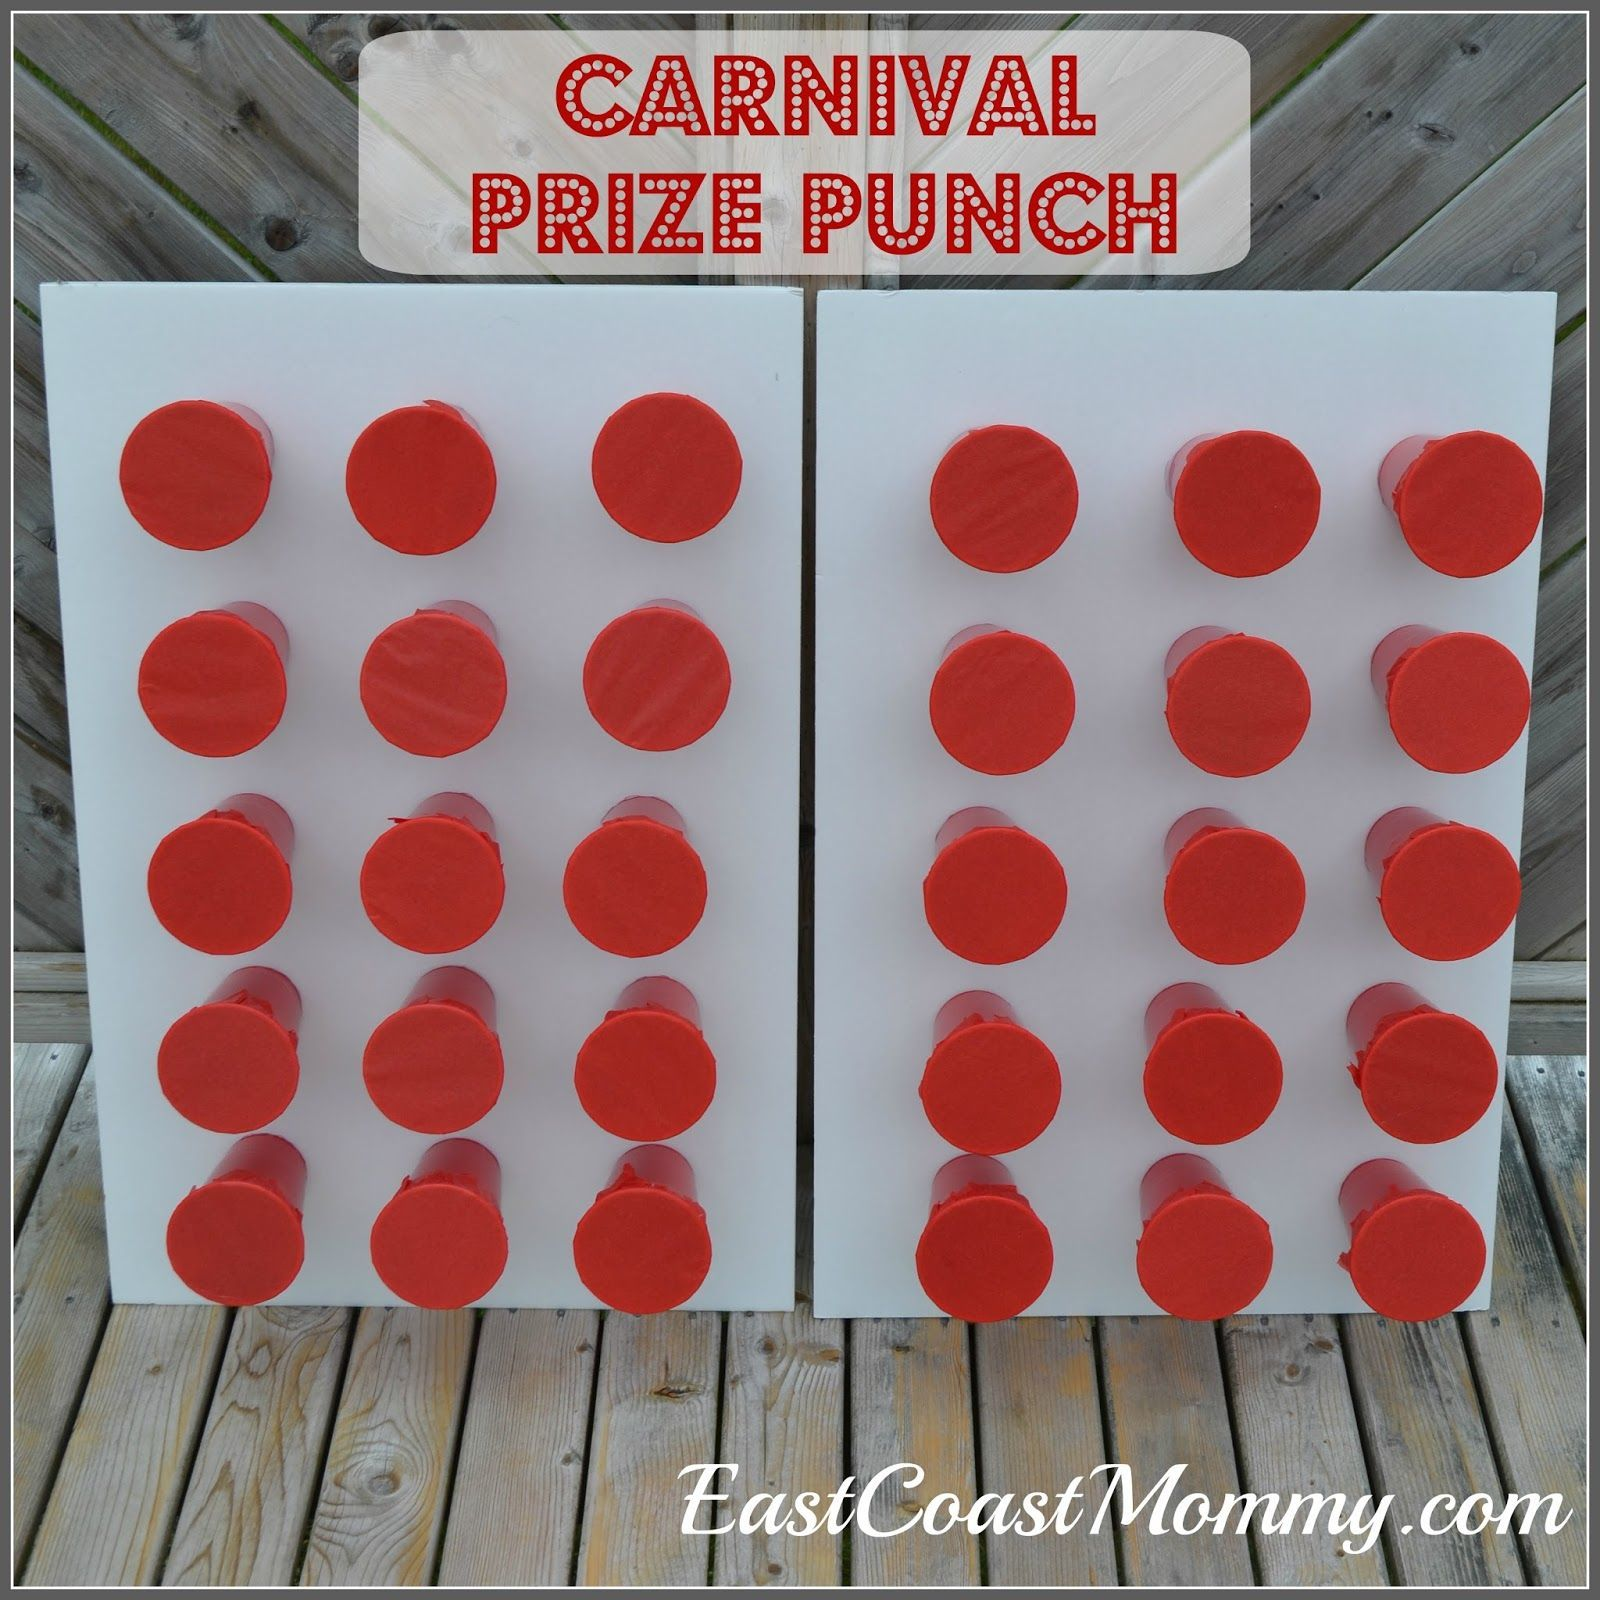 East Coast Mommy Carnival Prizes In 2020 Carnival Games For